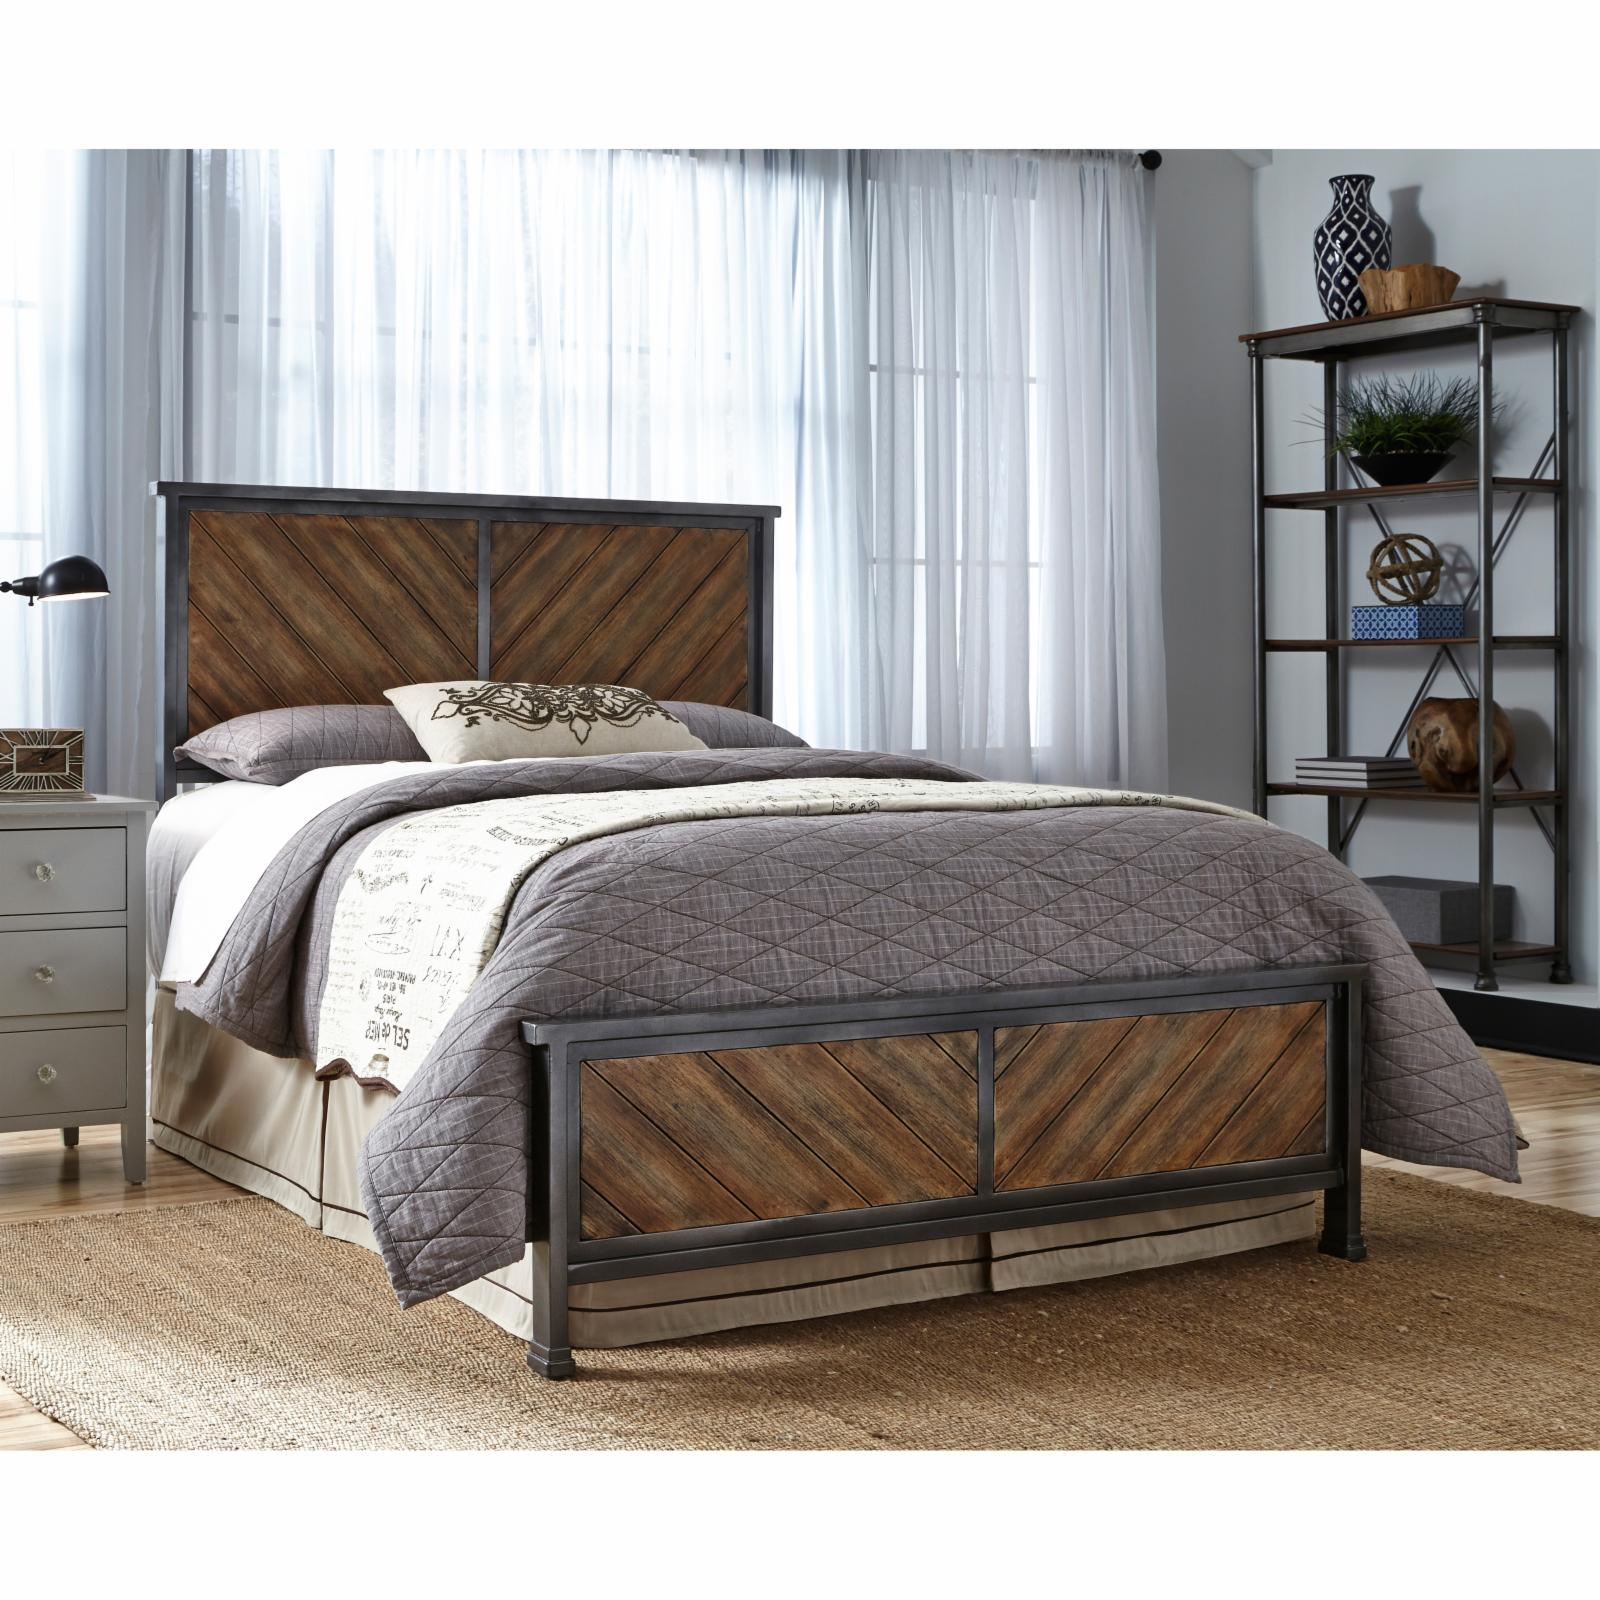 Fashion Bed Group Braden Metal Panel Bed - B11445